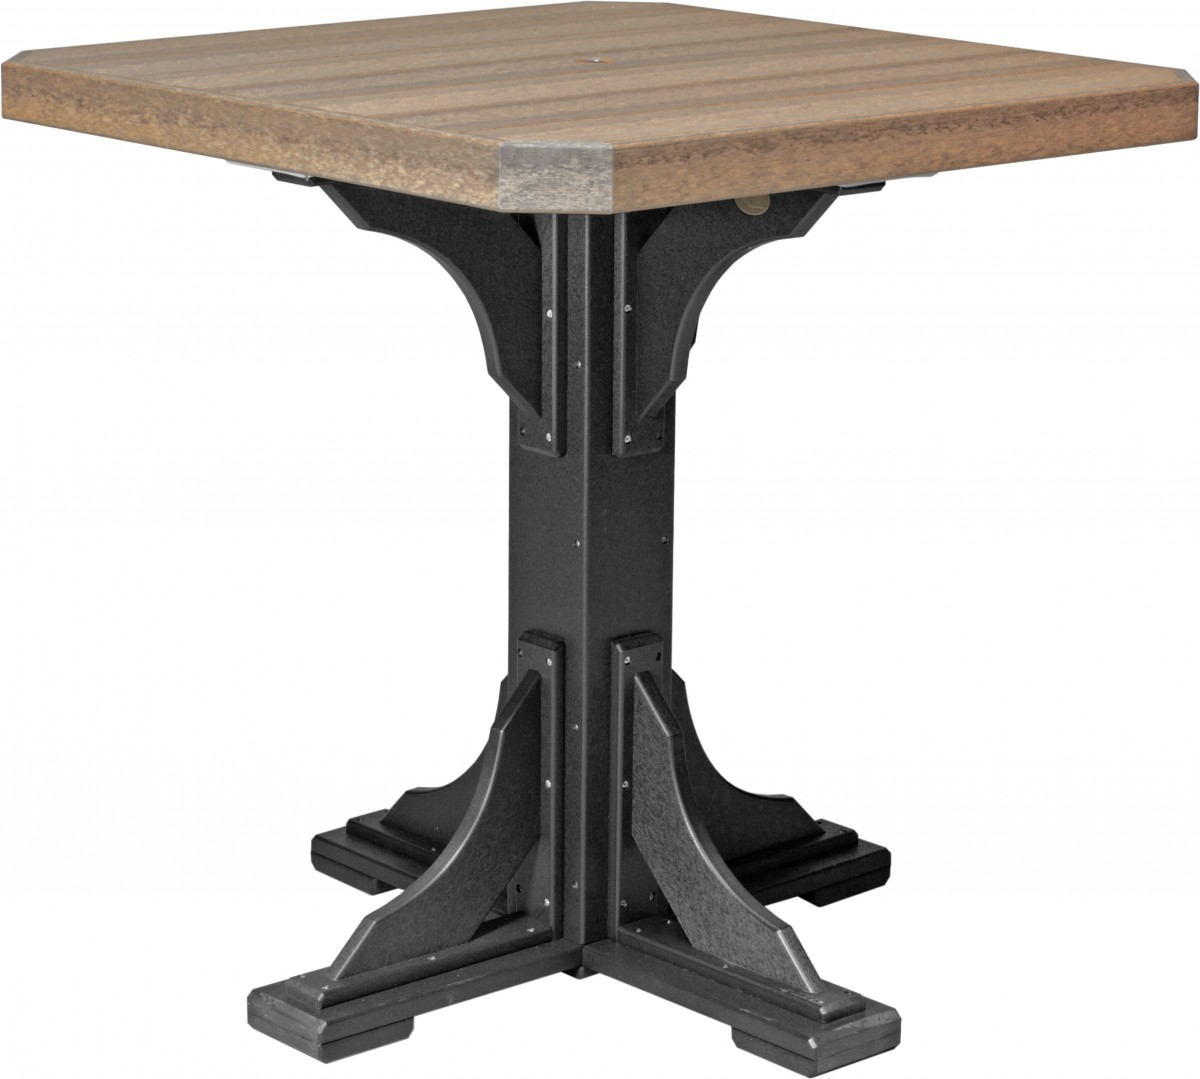 Luxcraft Poly Lumber 41″ Square Top Pedestal Table In Premium Woodgrain Poly Lumber – Dining, Counter, Or Bar Height